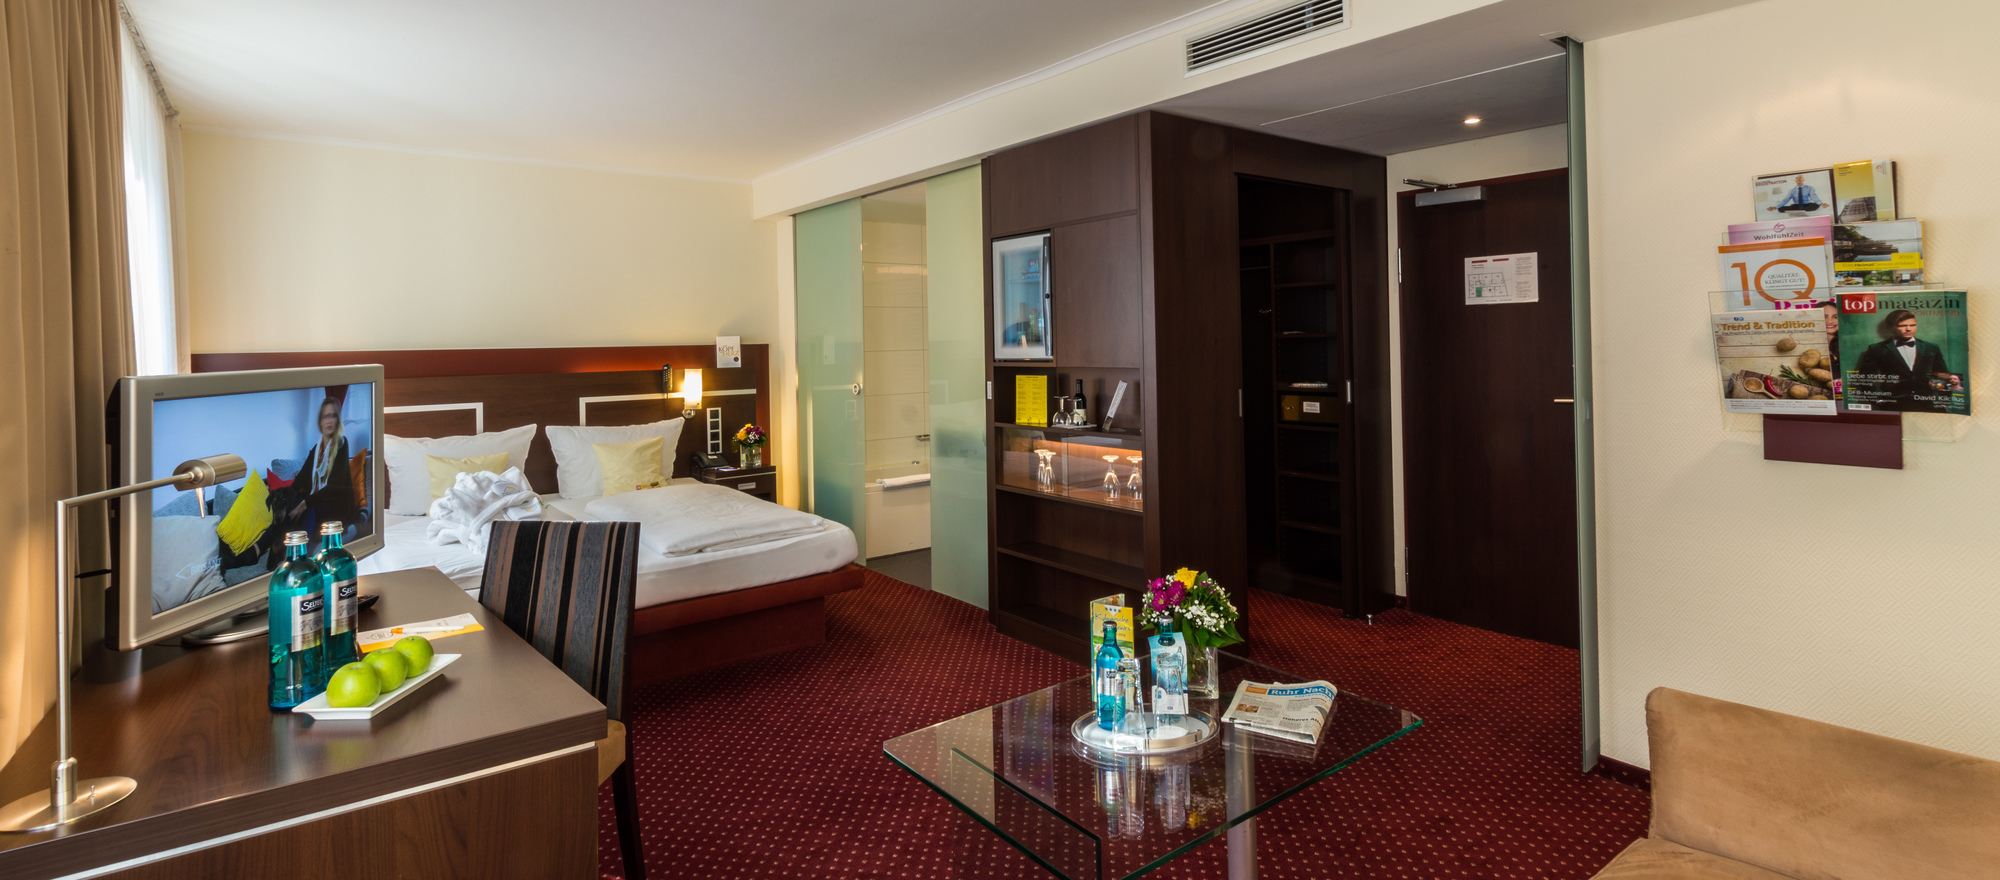 Exclusive Room in the Ringhotel Drees in Dortmund, 4 stars hotel in the Ruhrgebiet region